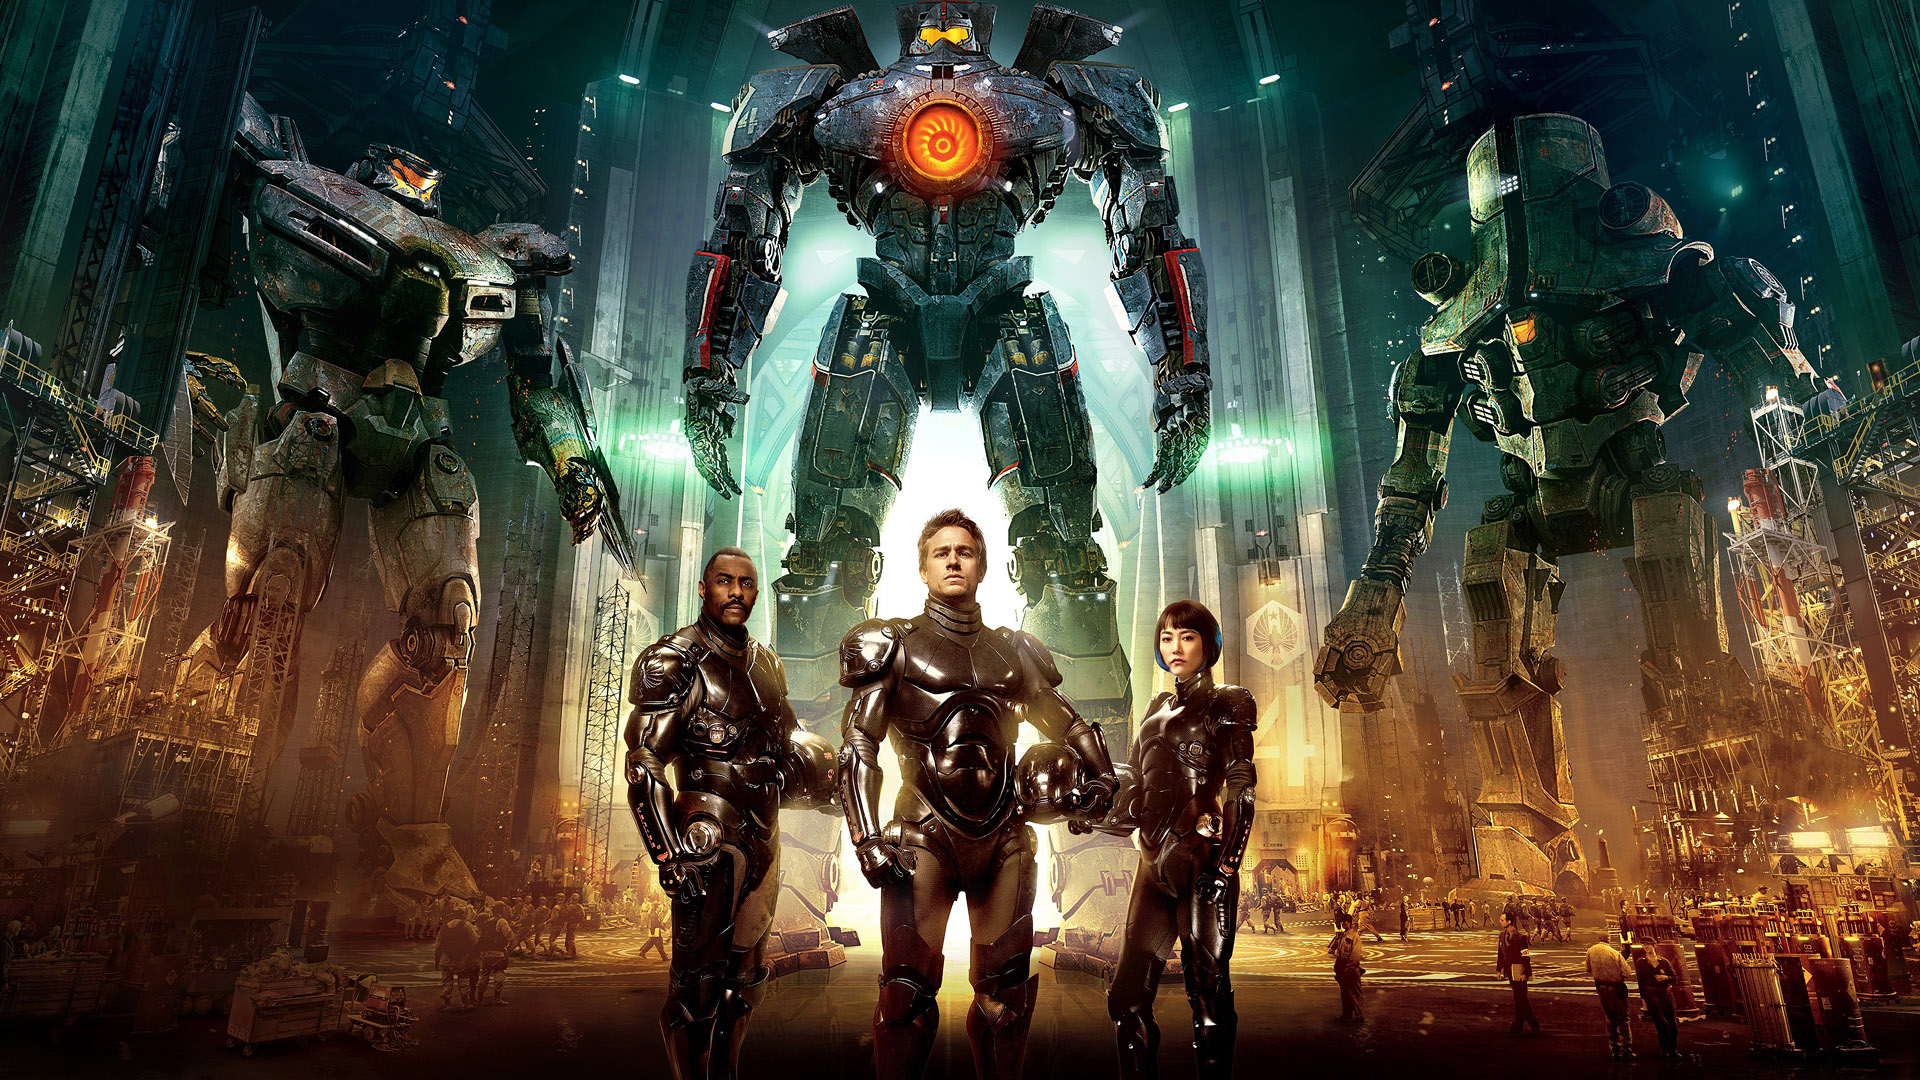 Guillermo del Toro Announces New Pacific Rim Animated Series and Sequel